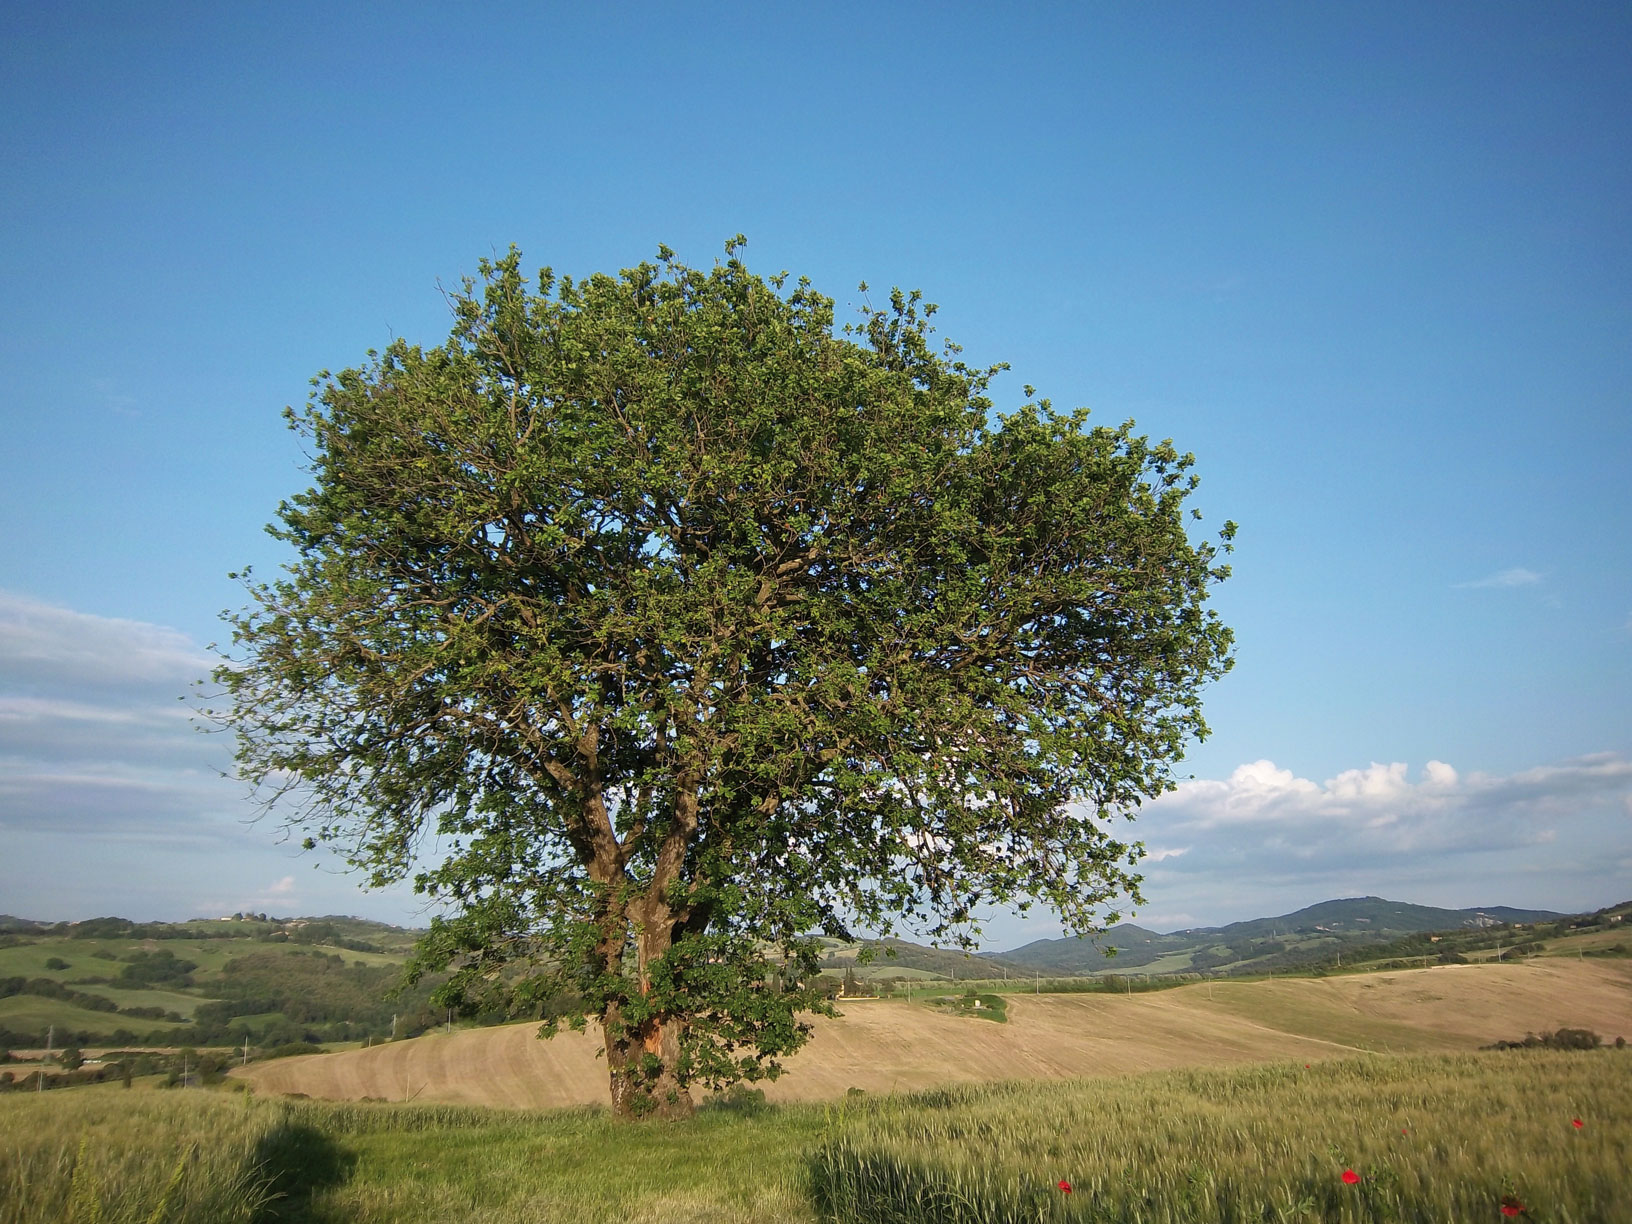 tree in a field with hills Le Selvole Farmhouse